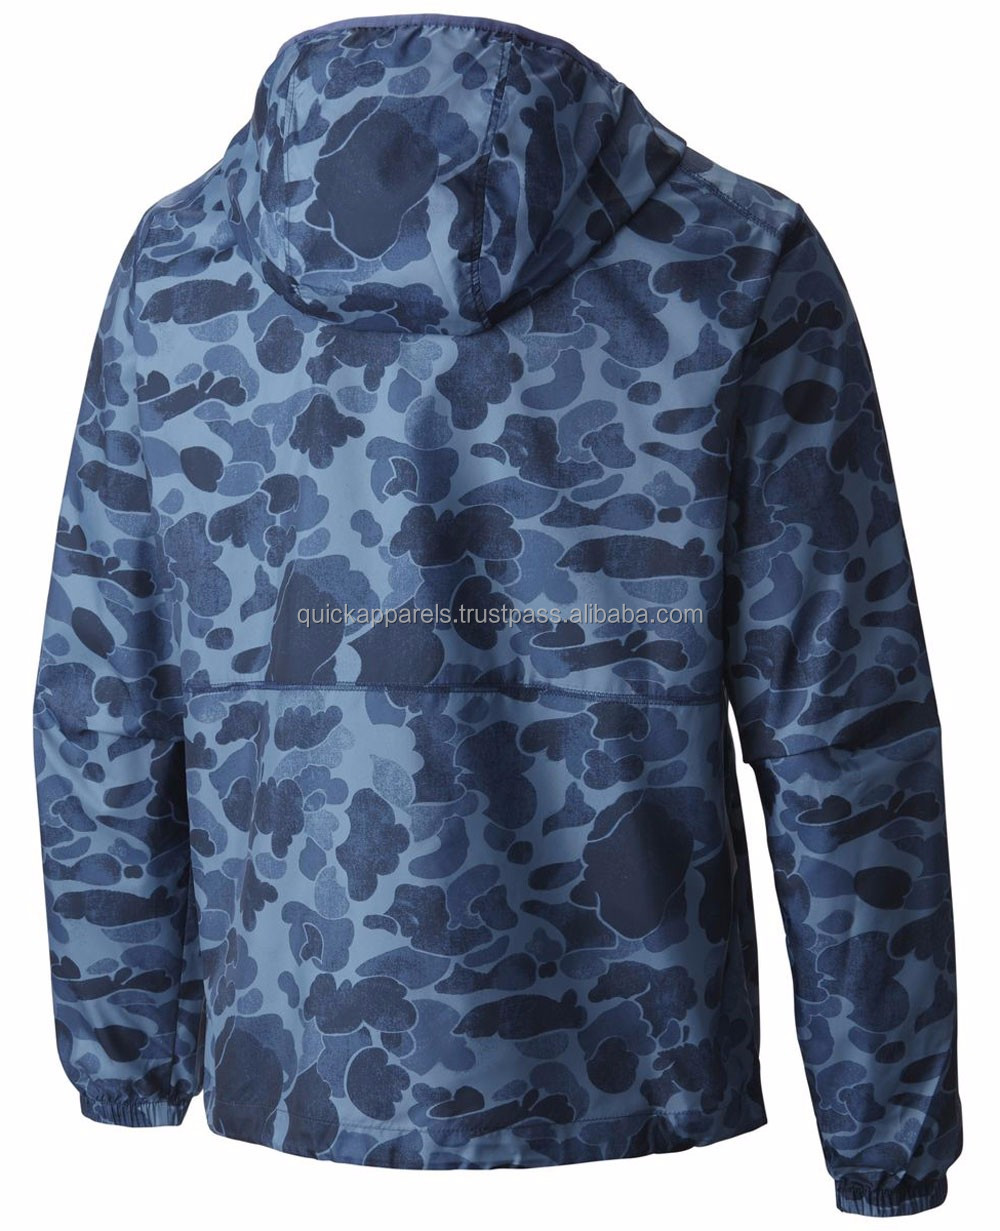 Camo Windbreaker Mens Waterproof Nylon Military Rain Jacket,Lightweight woven camo printing windbreaker jacket